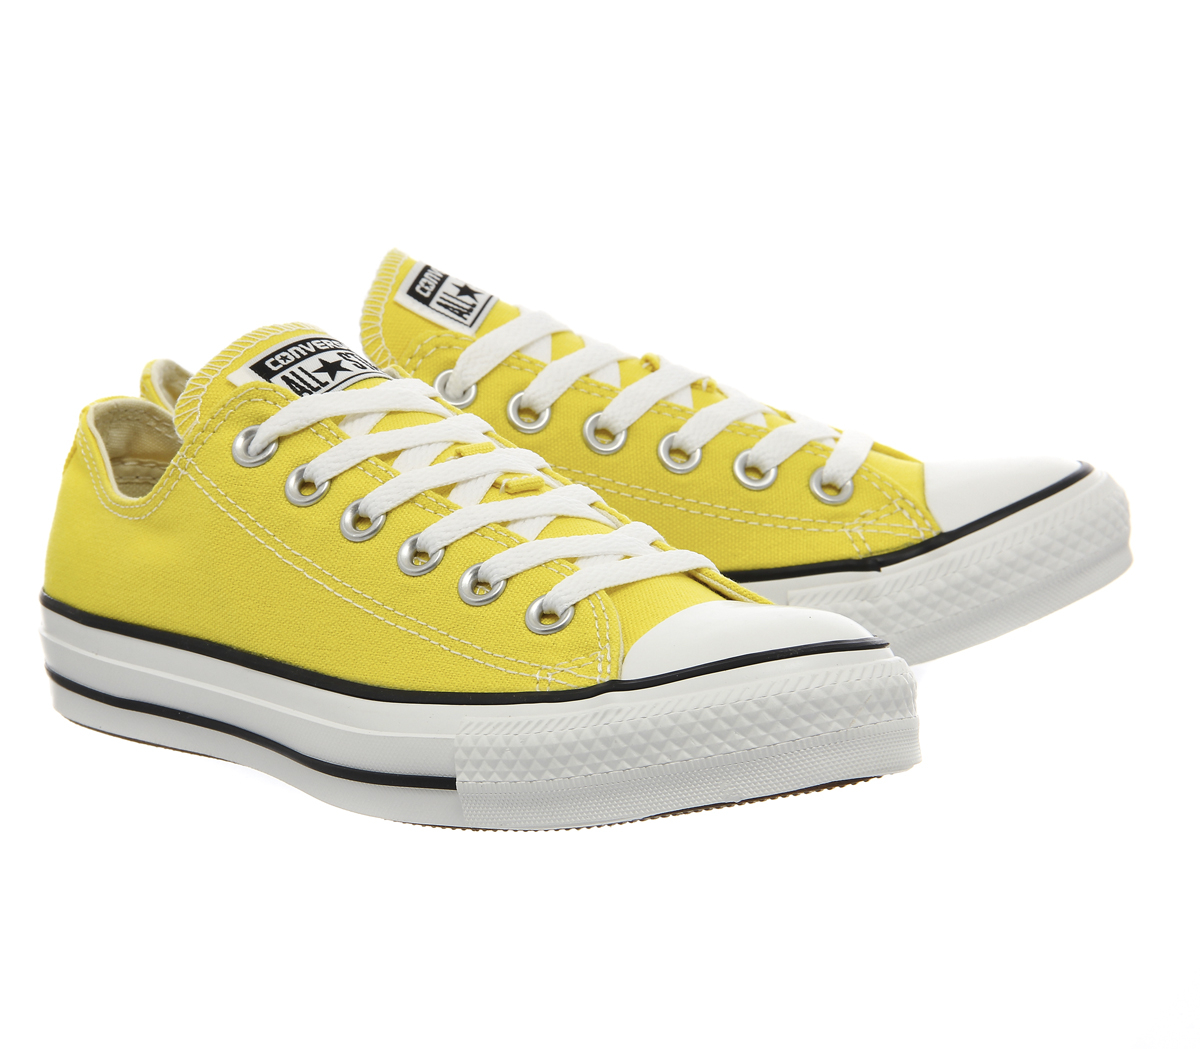 Converse All Star Low In Yellow Citrus Lyst